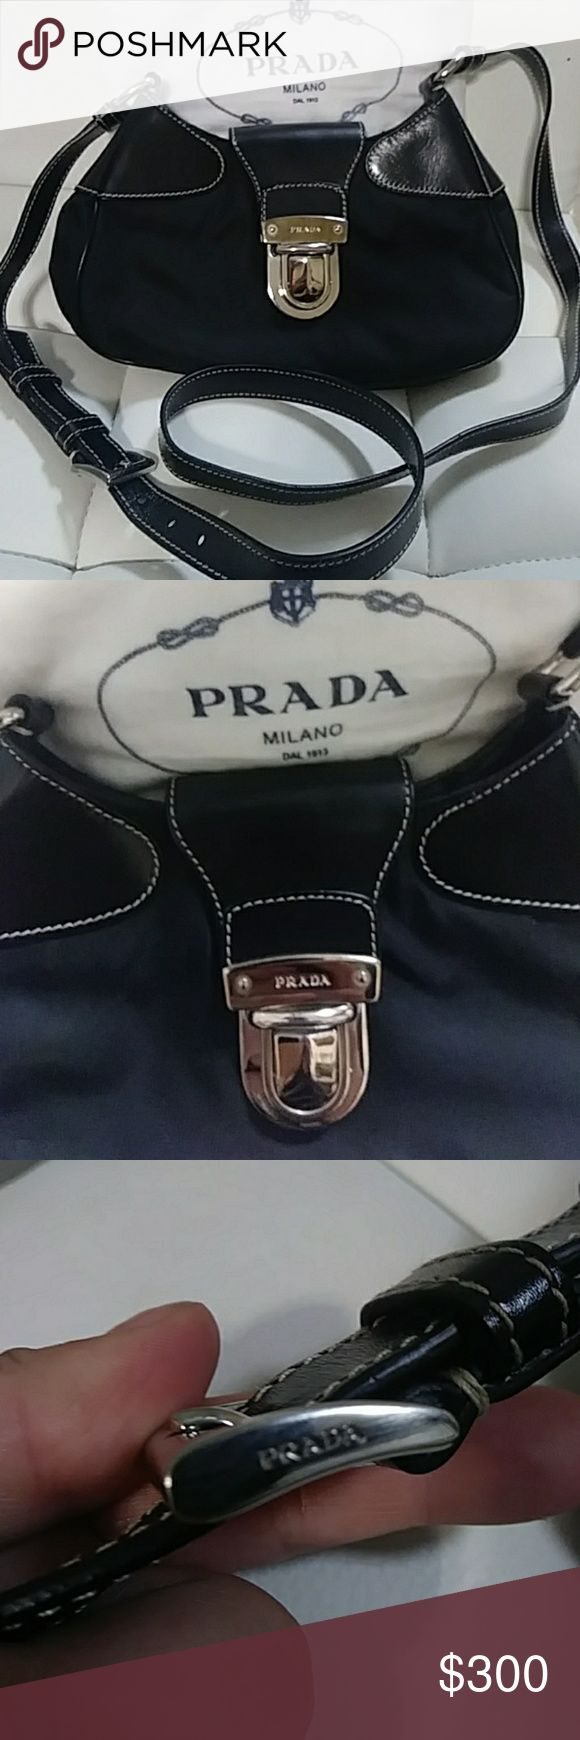 Authentic Prada Small Crossbody Brand New & NeVeR UseD.  Authentic - OF COURSE!  Nylon and leather.  Small crossbody that can b dressed up r down. Will come with dustbag. Any questions plz feel free 2 ask me anything. ✌, 💗, and HaPpY PoShInG dollz !!! Prada Bags Crossbody Bags